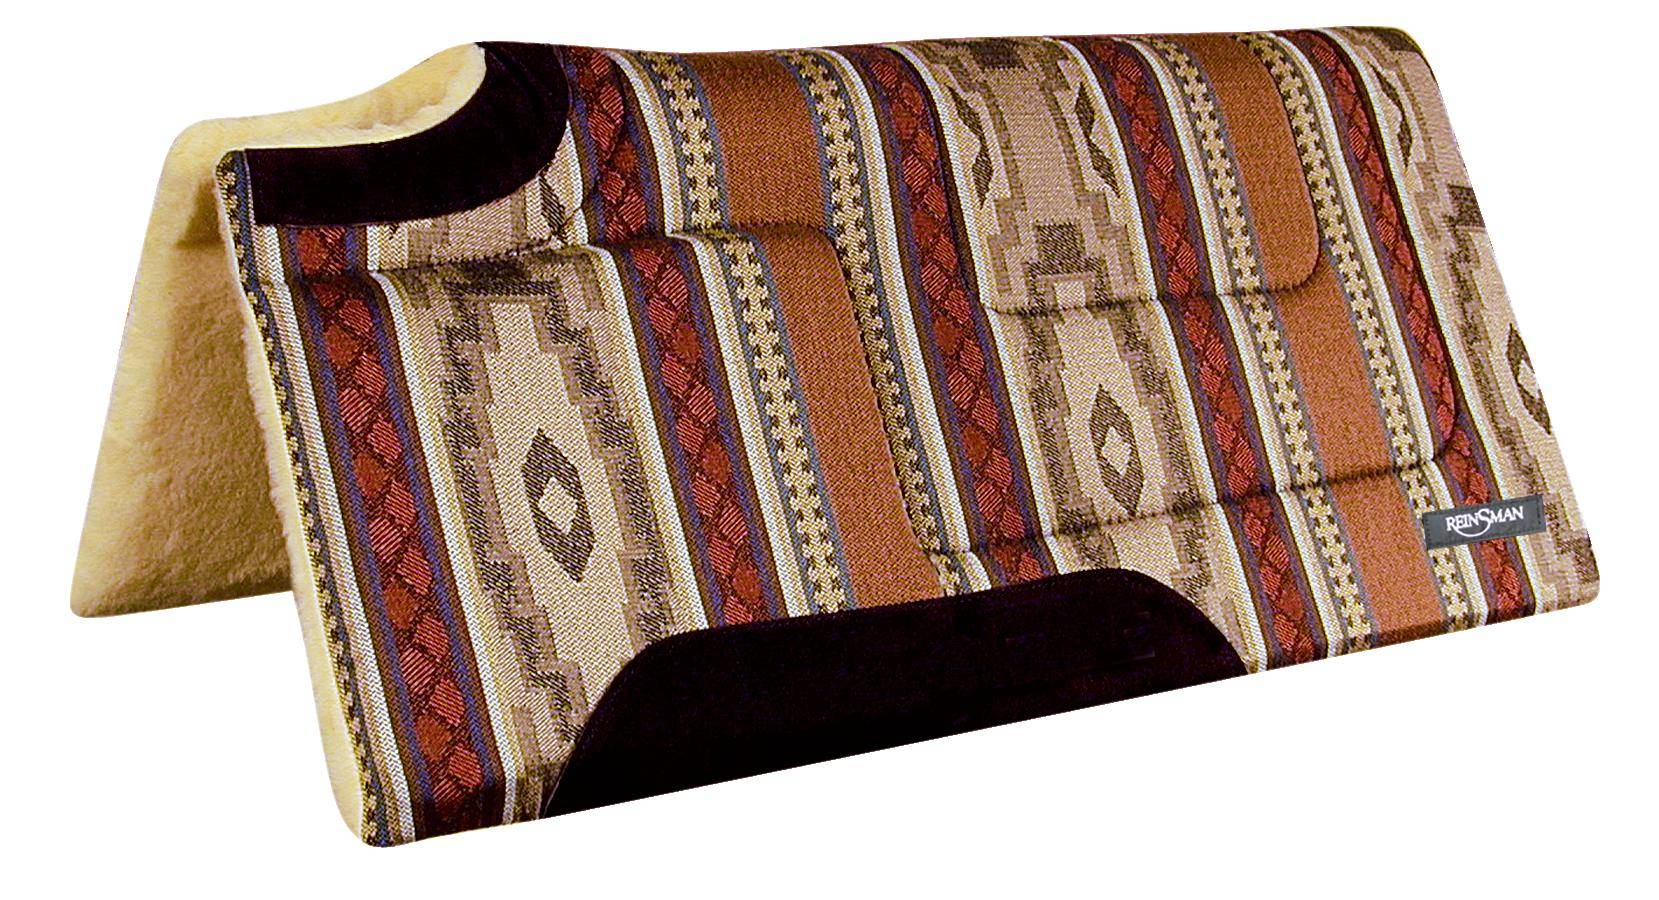 REINSMAN Square Cutback/Built-Up Fleece Herculon Pad - Corral Beige Print